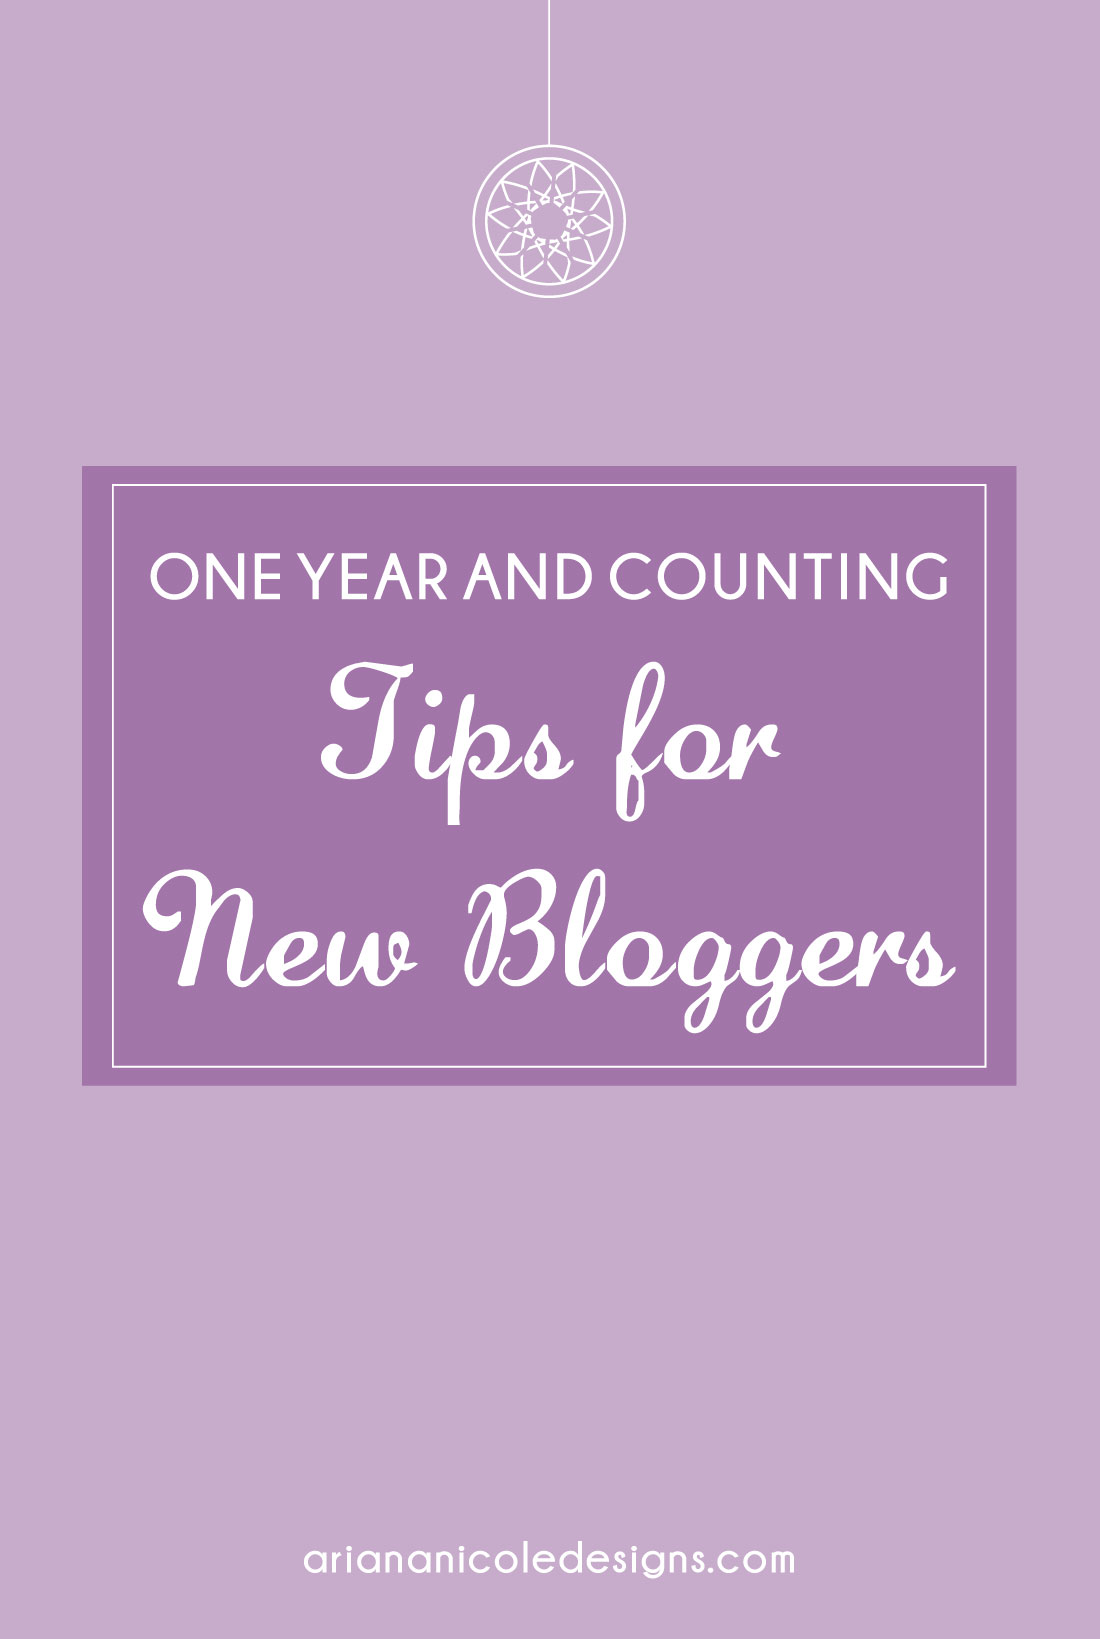 One_Year_And_Counting_Tips_For_New_Bloggers-1100